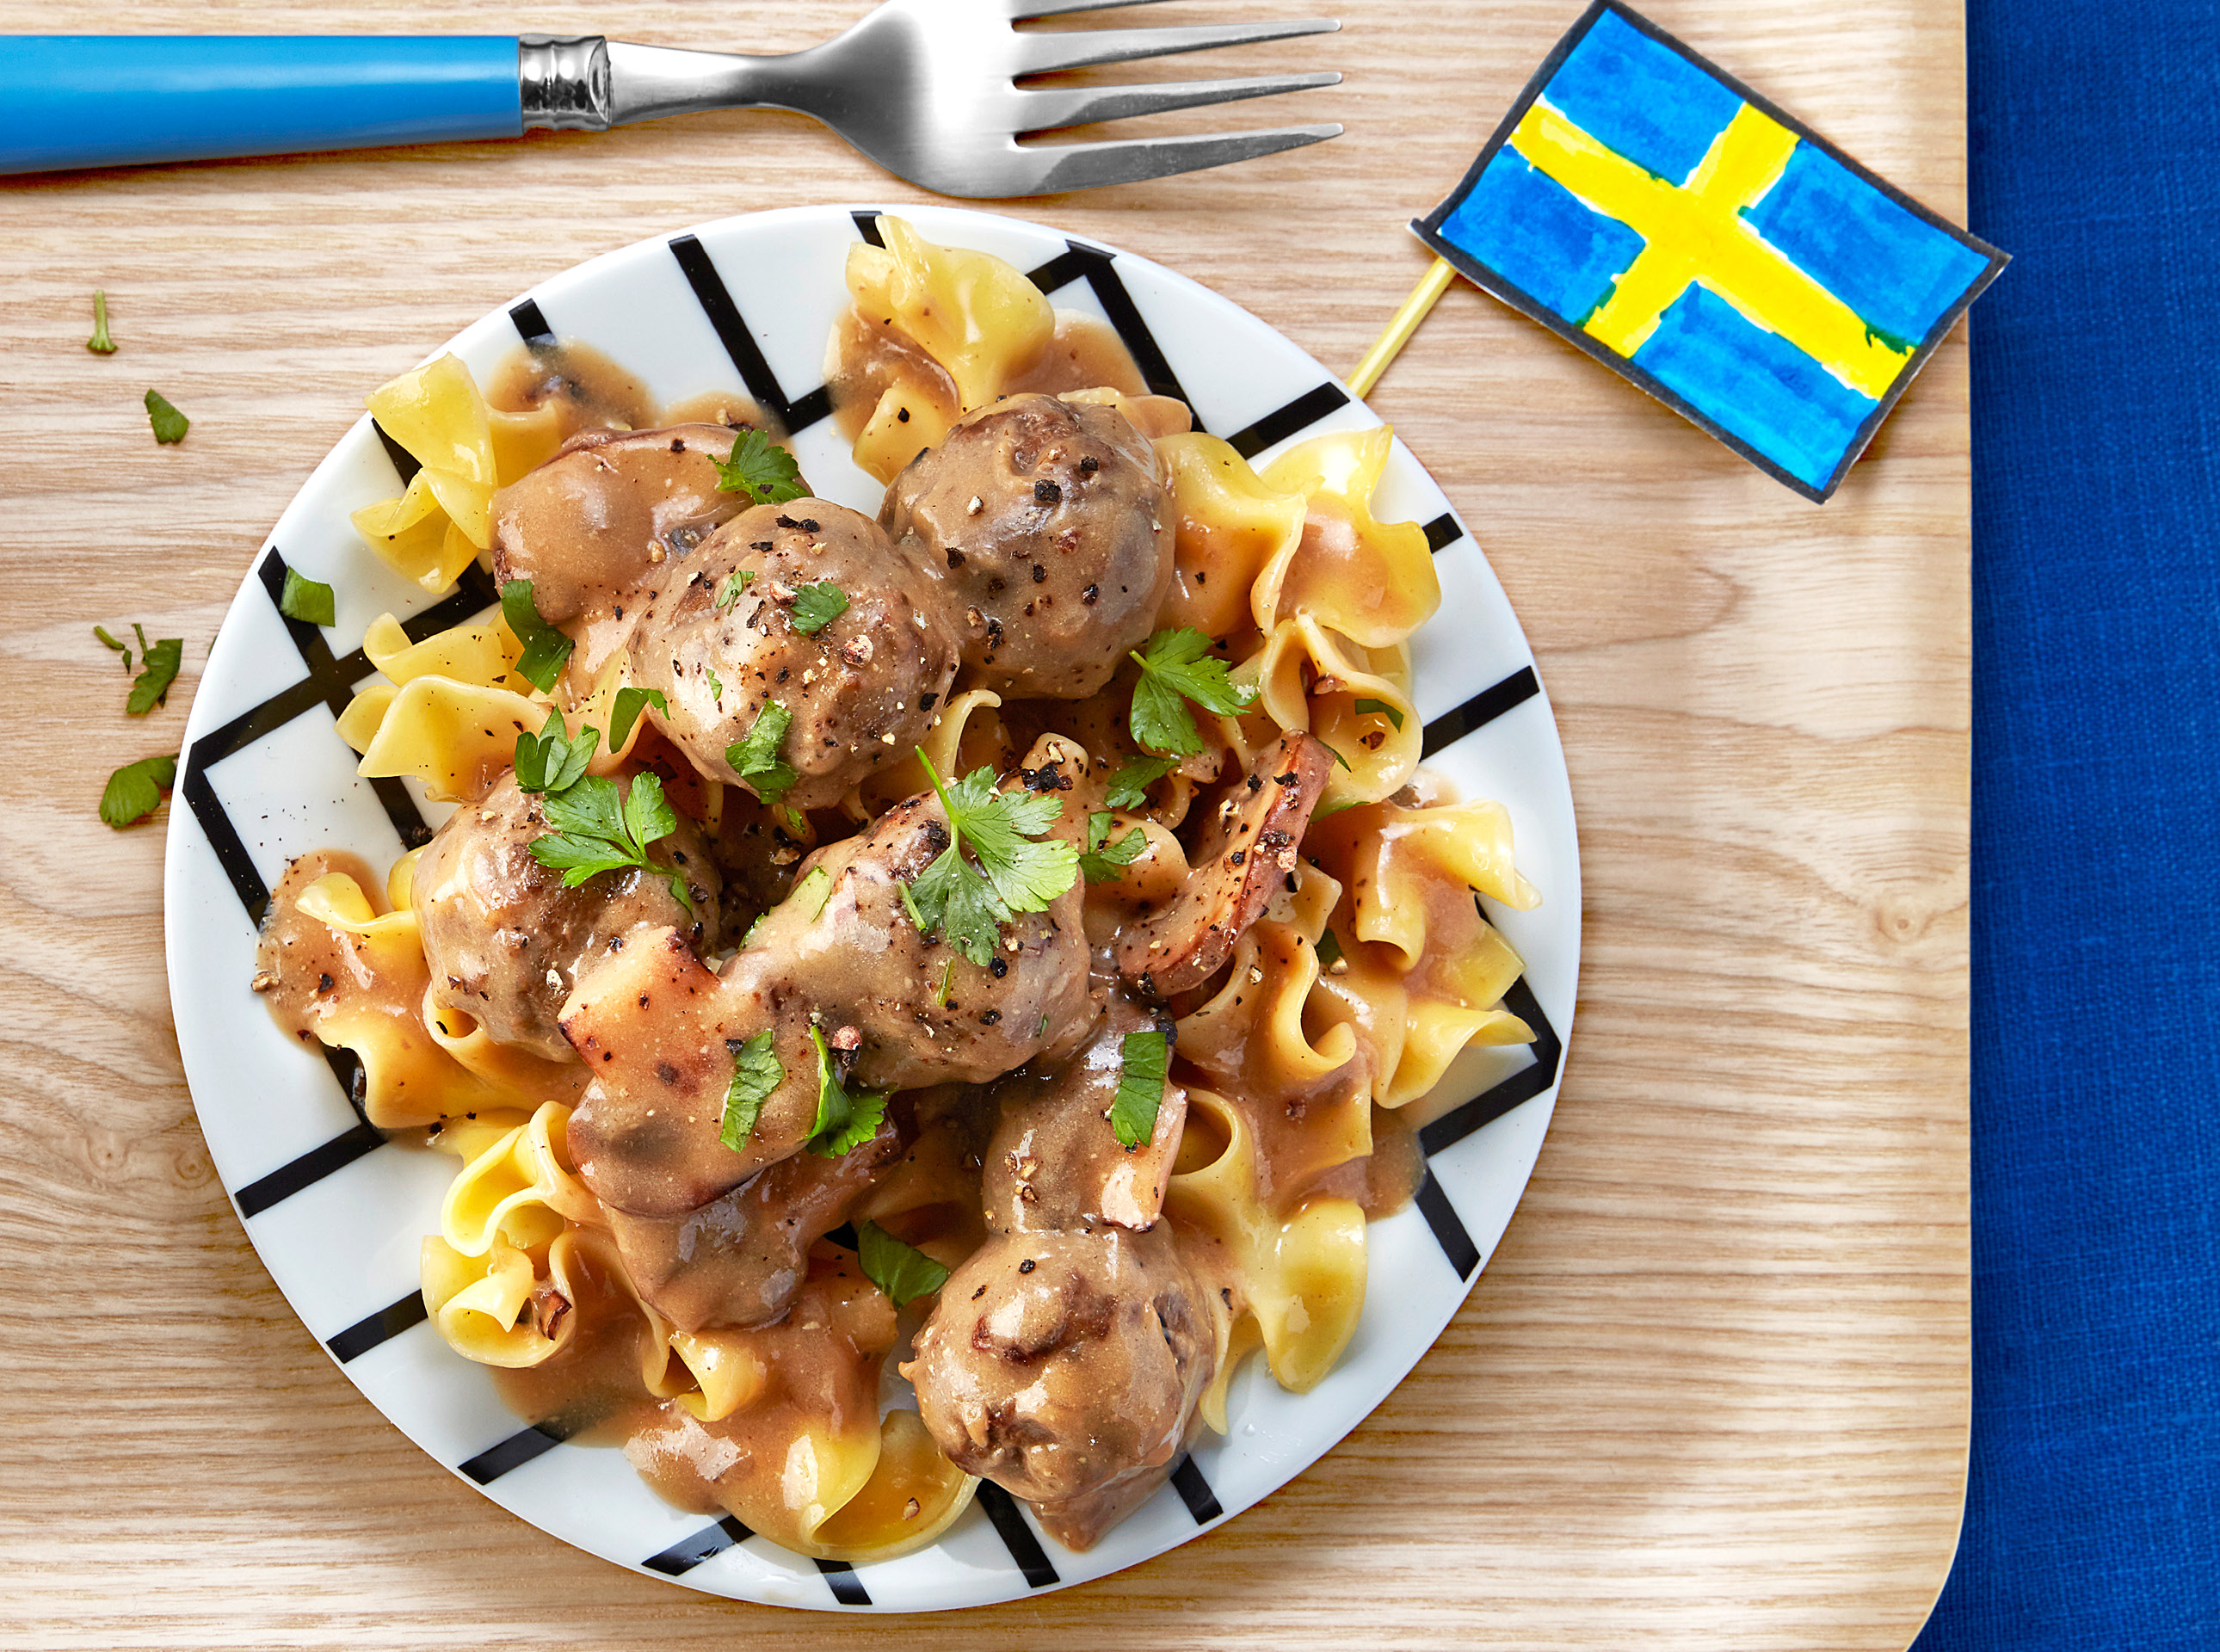 Swedish Meatballs And Egg Noodles